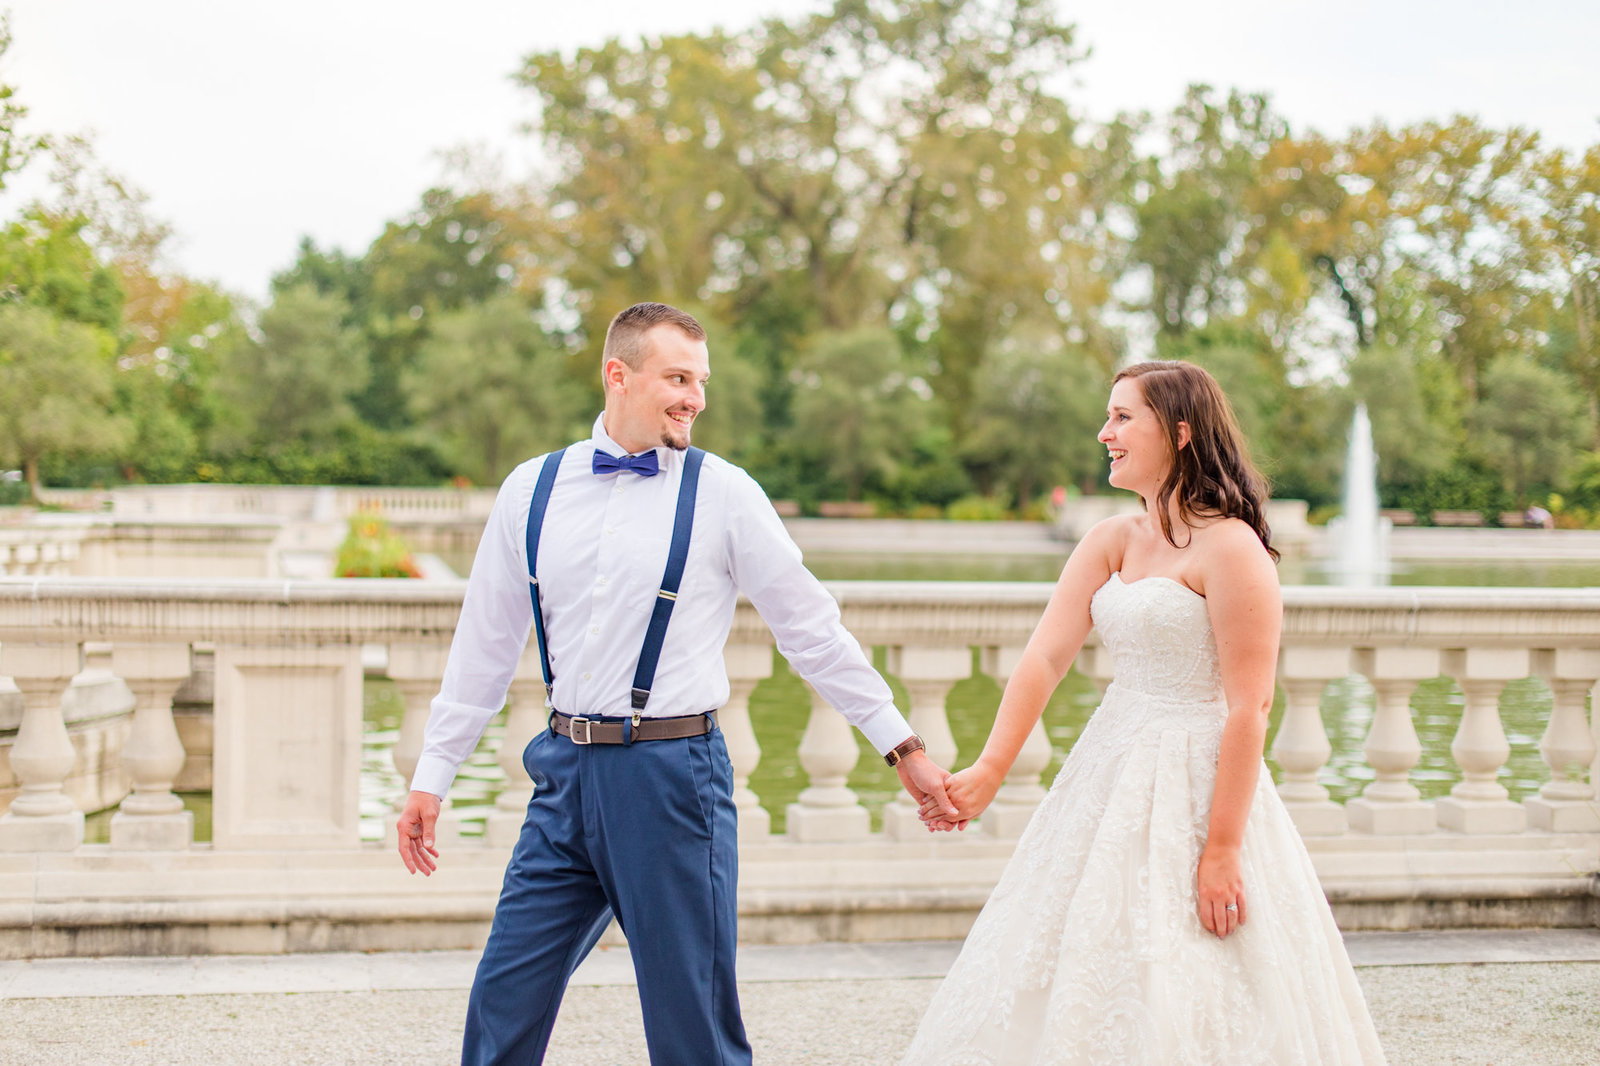 st-louis-wedding-photographer-alton-belleville-spring-stl-romantic-portraits-20